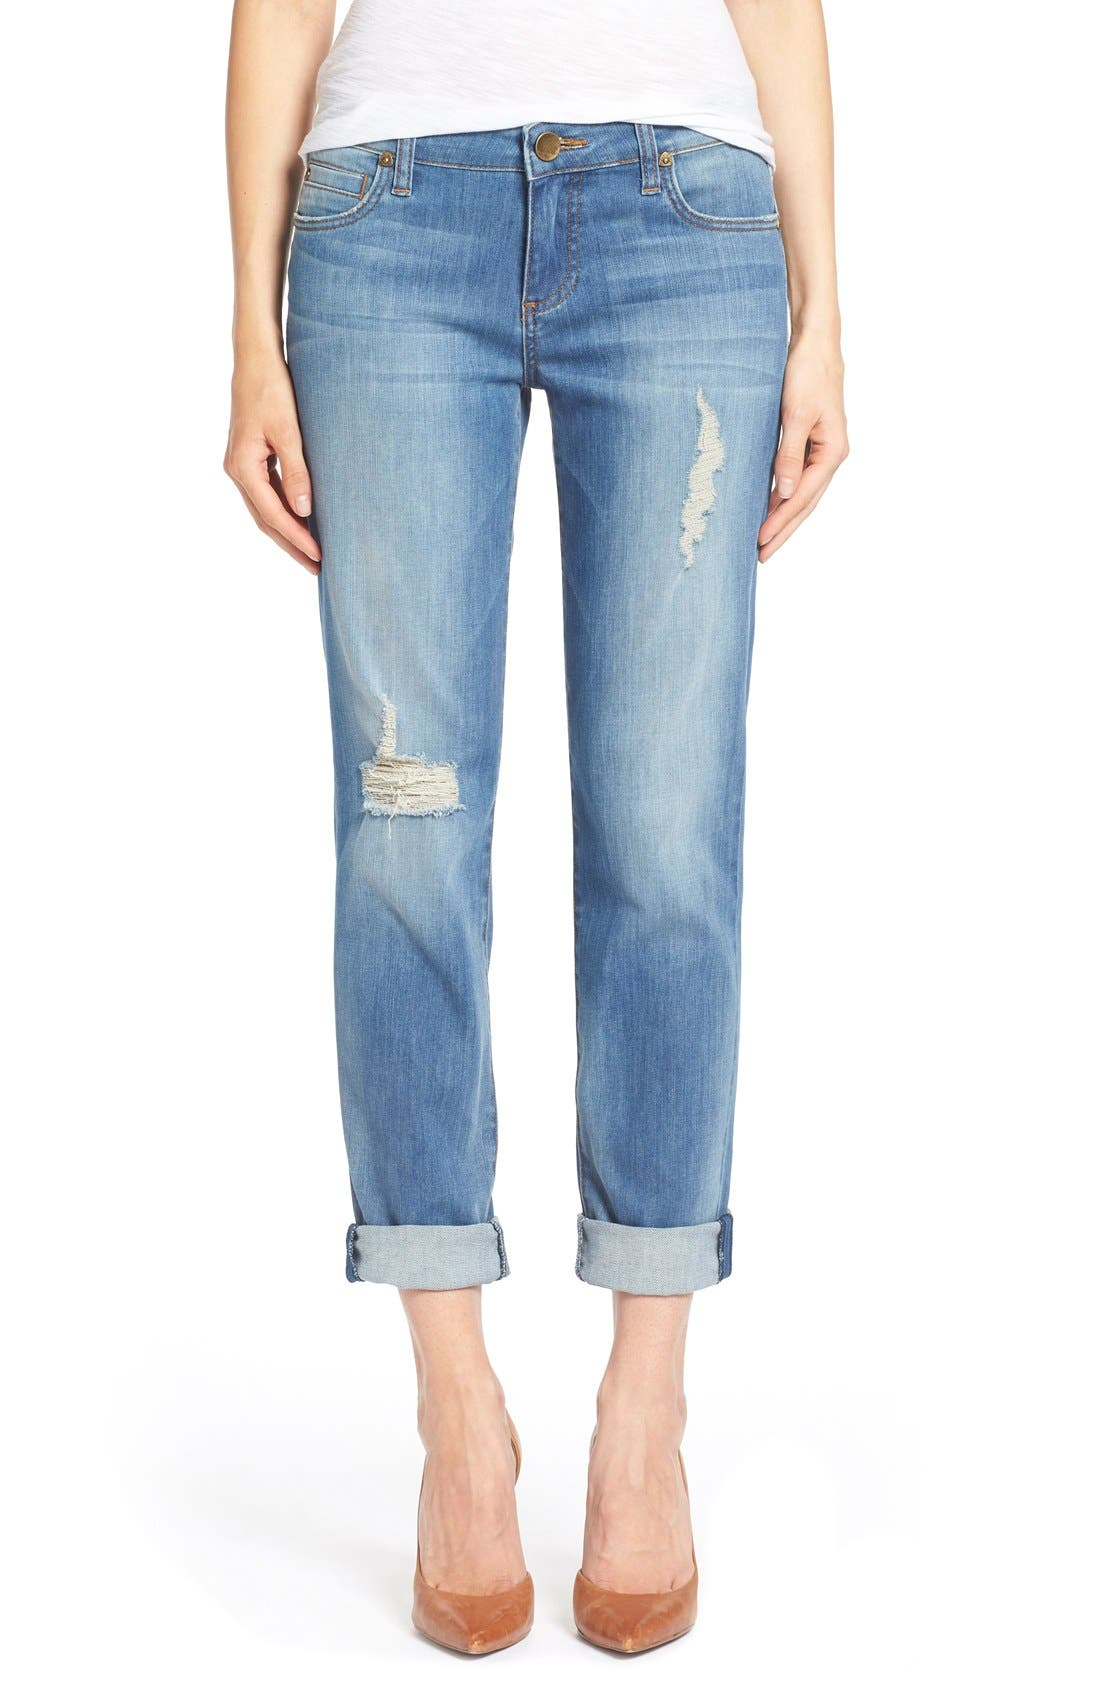 KUT FROM THE KLOTH 'Catherine' Distressed Stretch Boyfriend Jeans, Main, color, 401